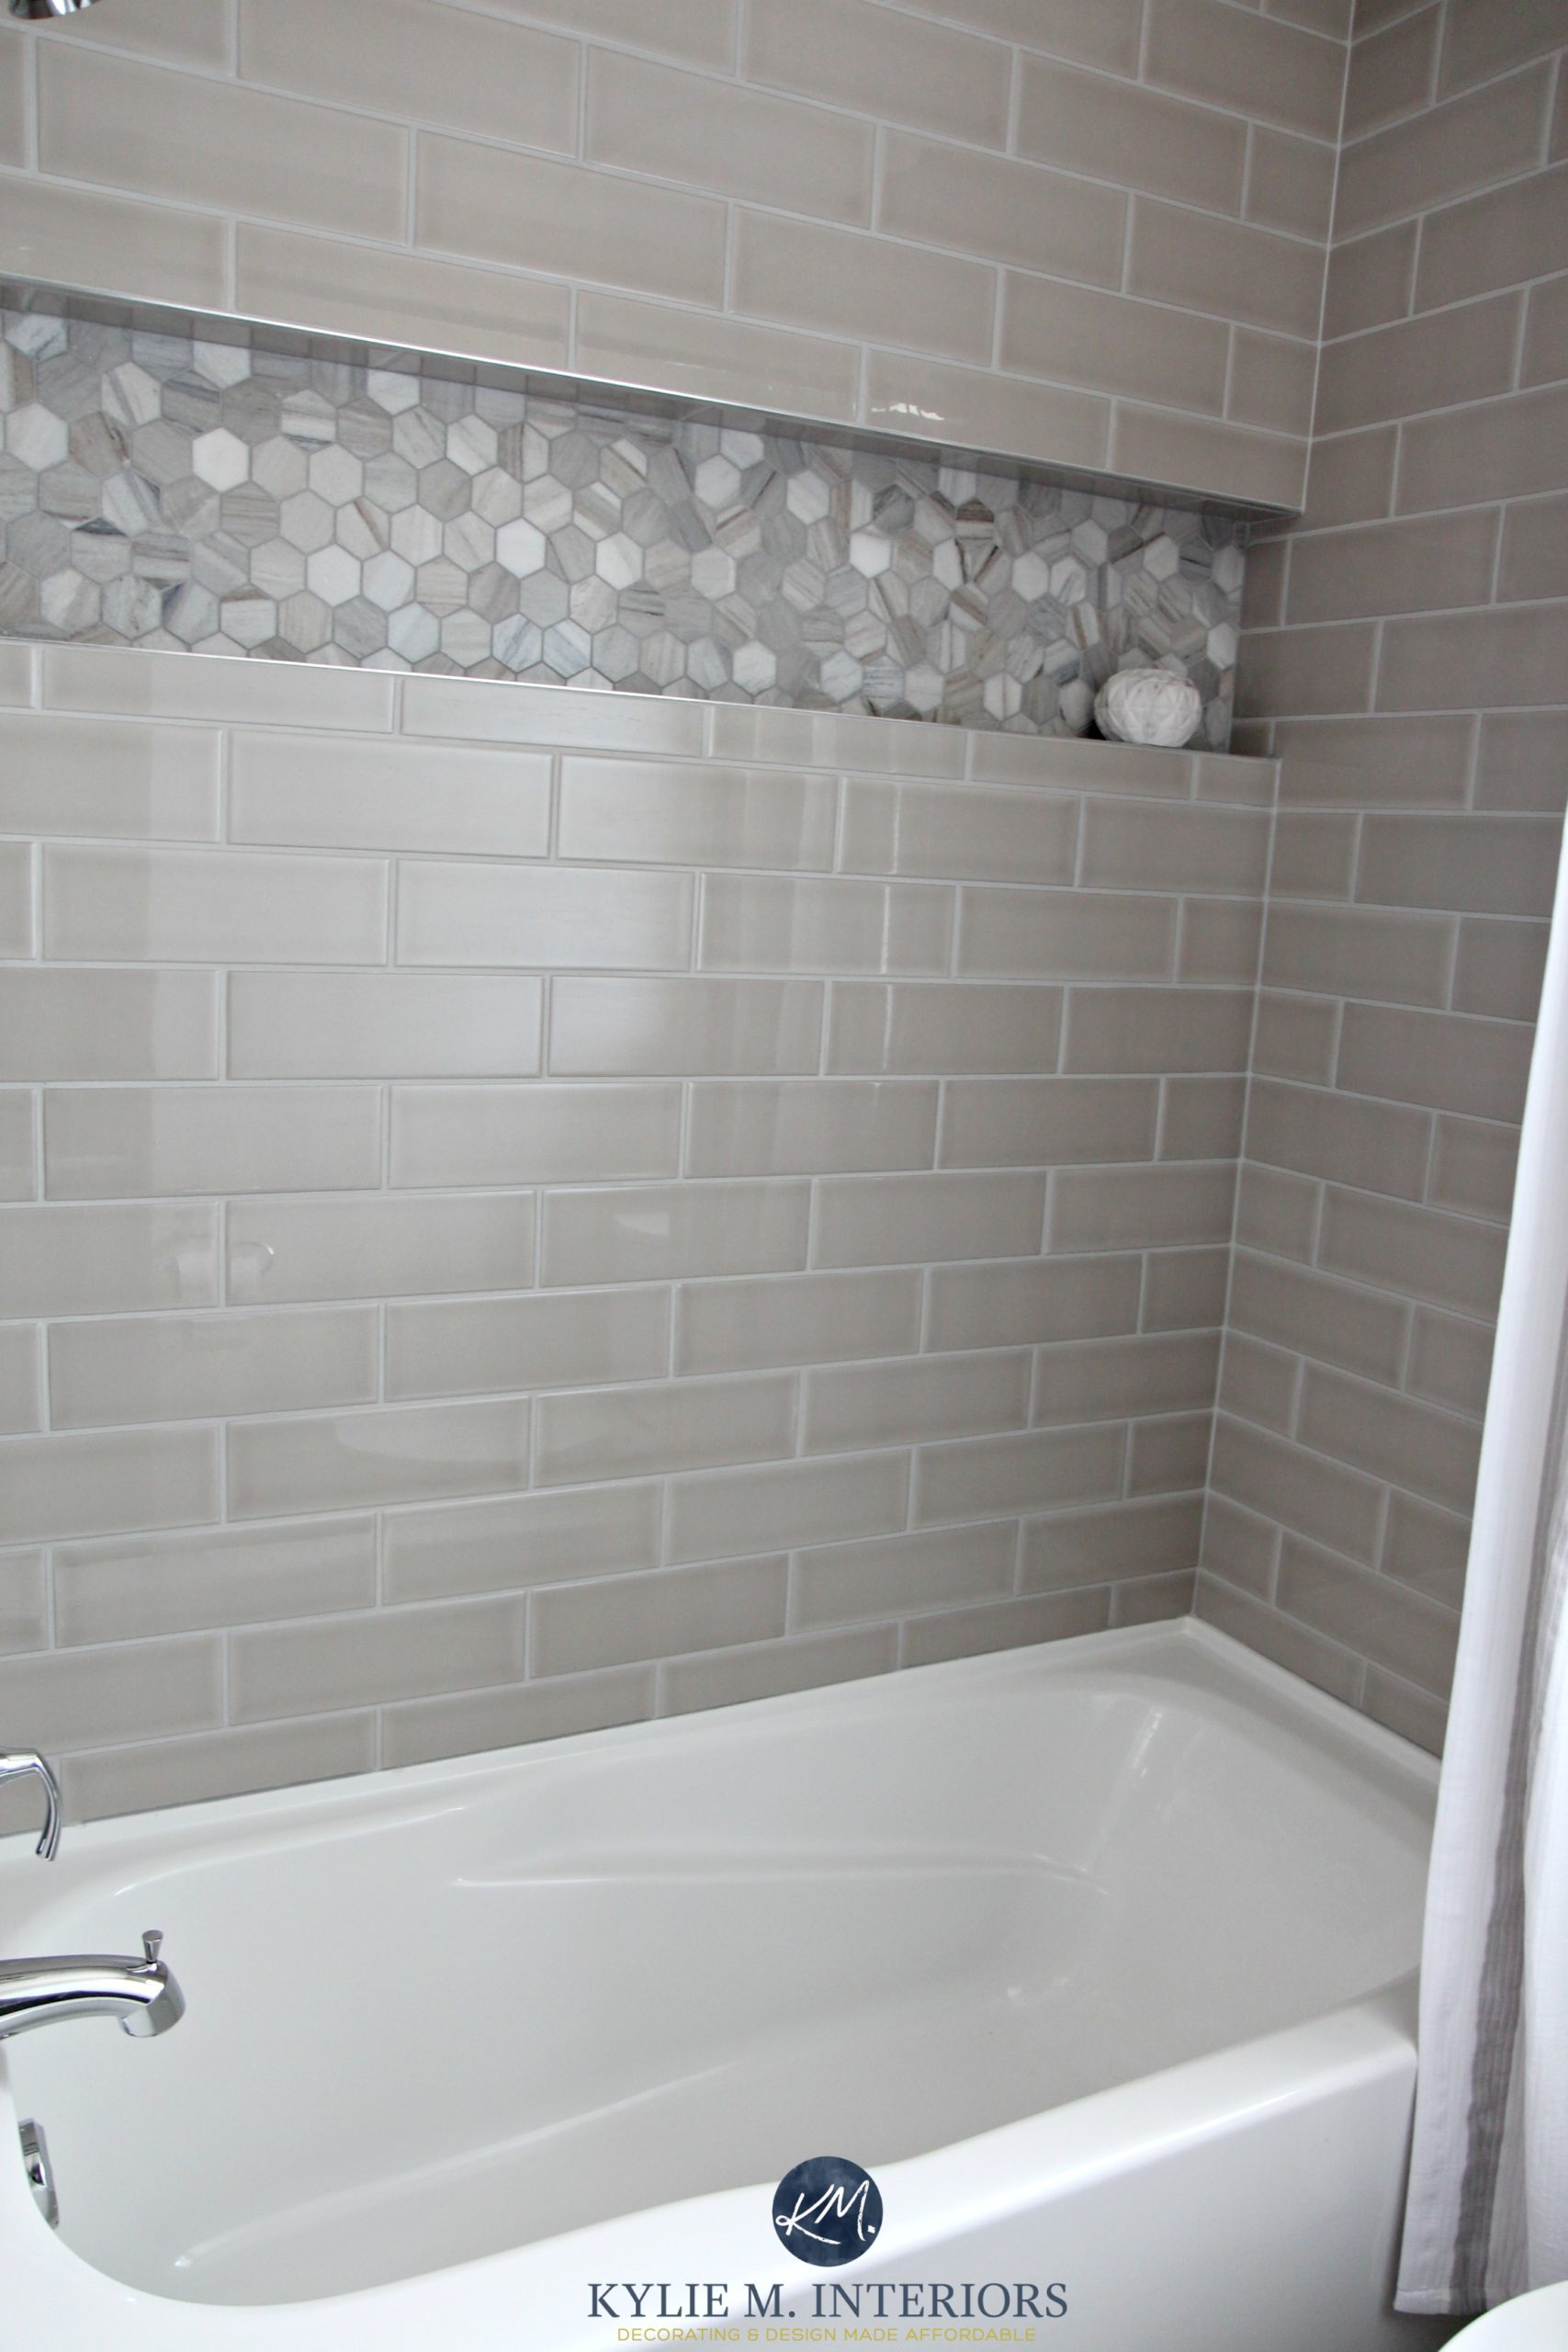 bathroom with bathtub and gray subway tile shower surround with niche or alcove in hexagon